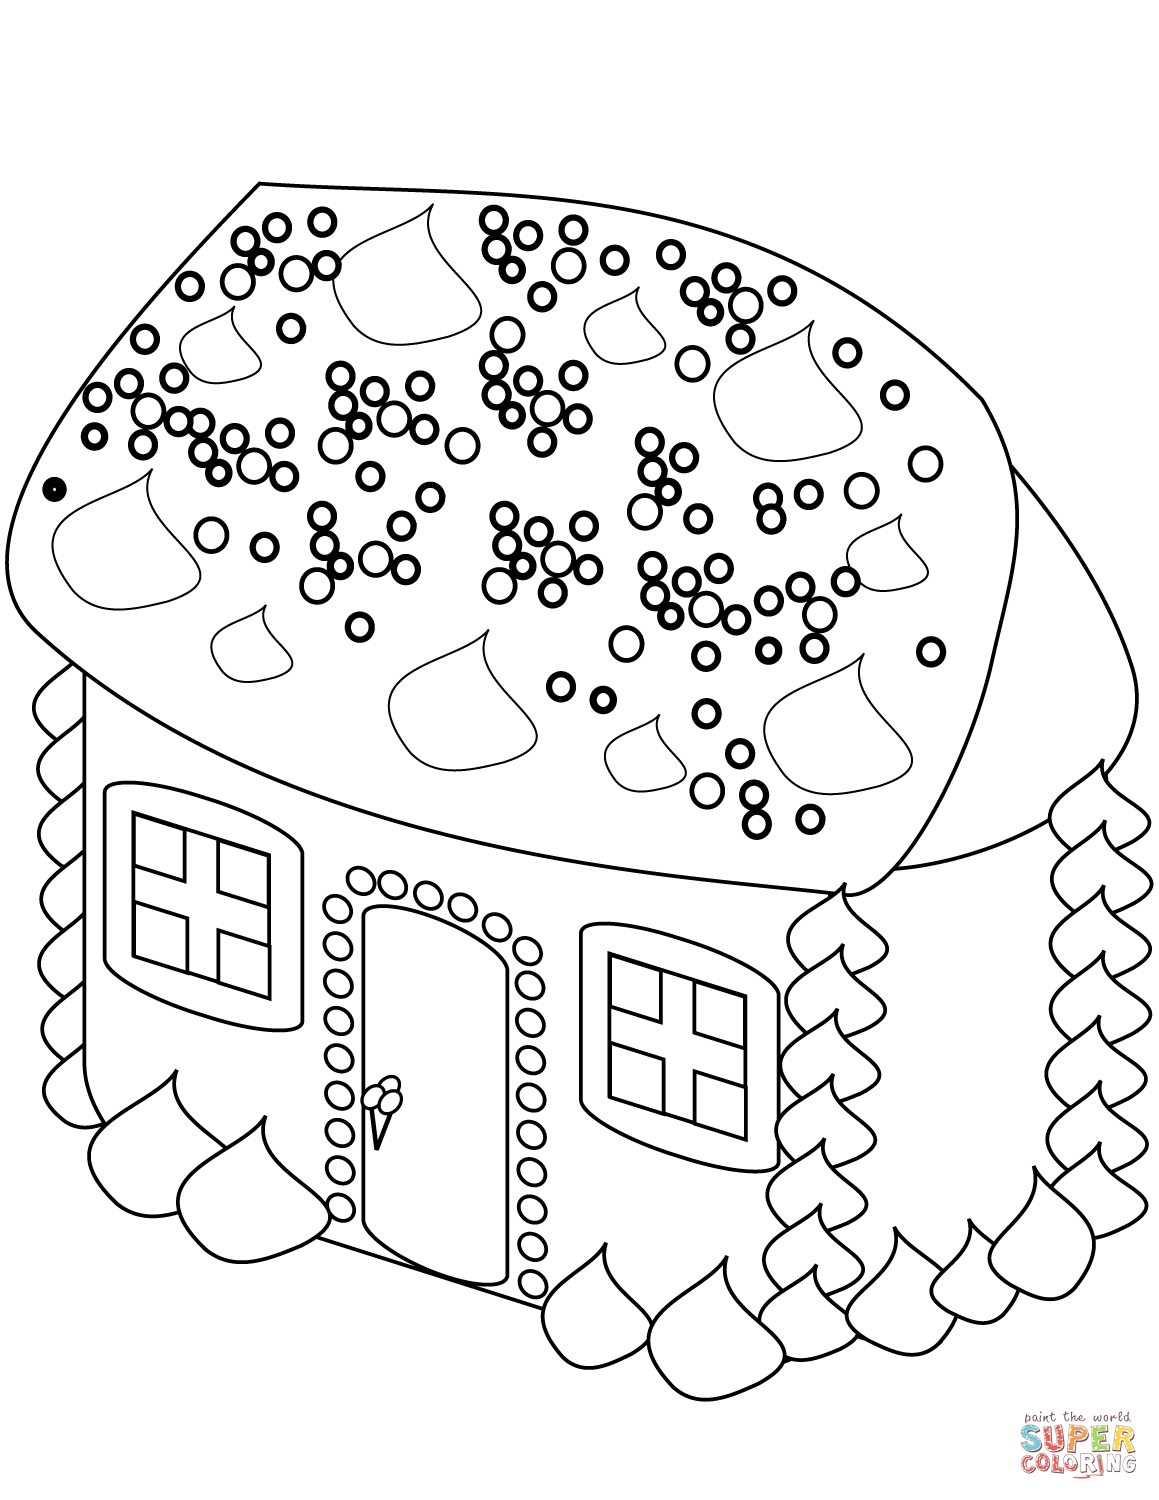 Gingerbread House Coloring Page | Free Printable Coloring Pages - Free Printable Gingerbread House